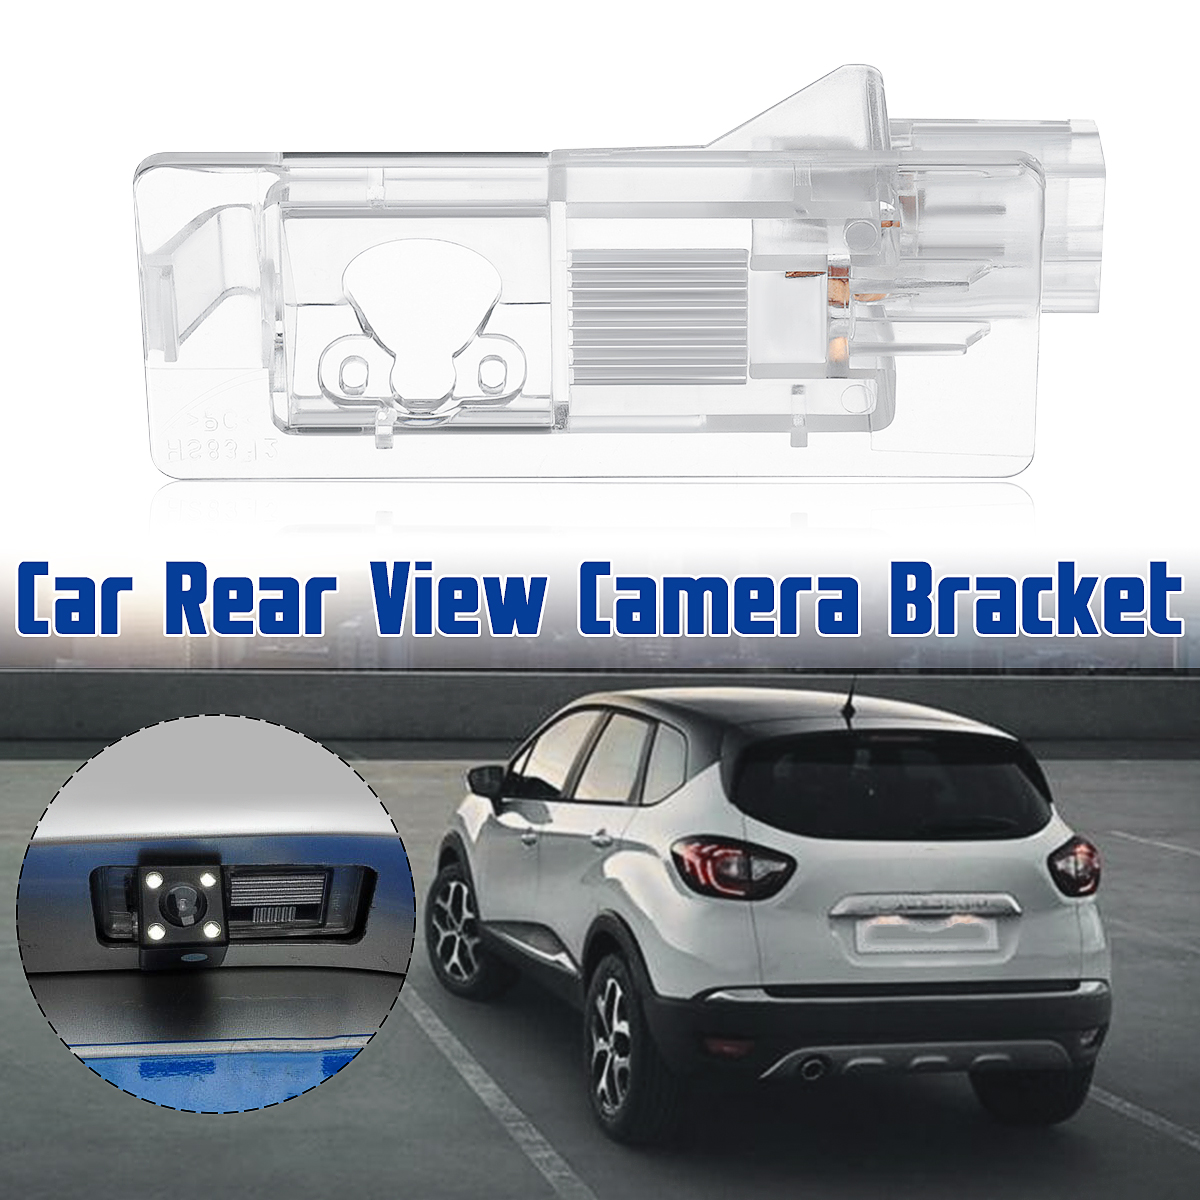 Car Rear View Camera Bracket For Renault Modus Grand Scenic Lodgy Captur Duster Latitude Fluence Symbol Megane 3 Clio 4